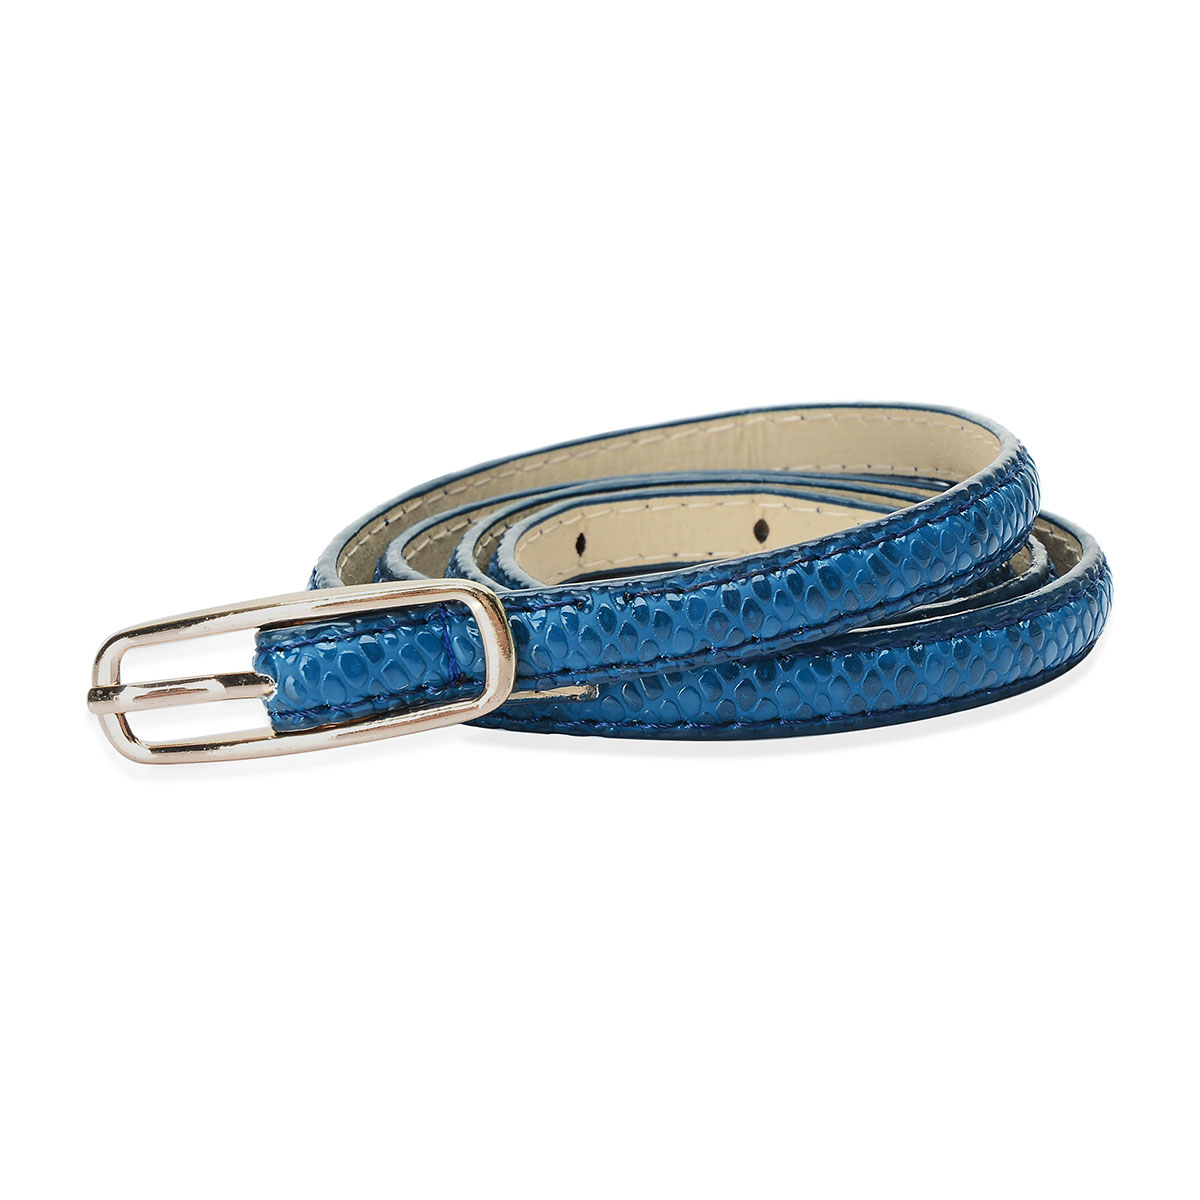 Classic Blue Snake Print Faux Leather Belt (31-36 in)